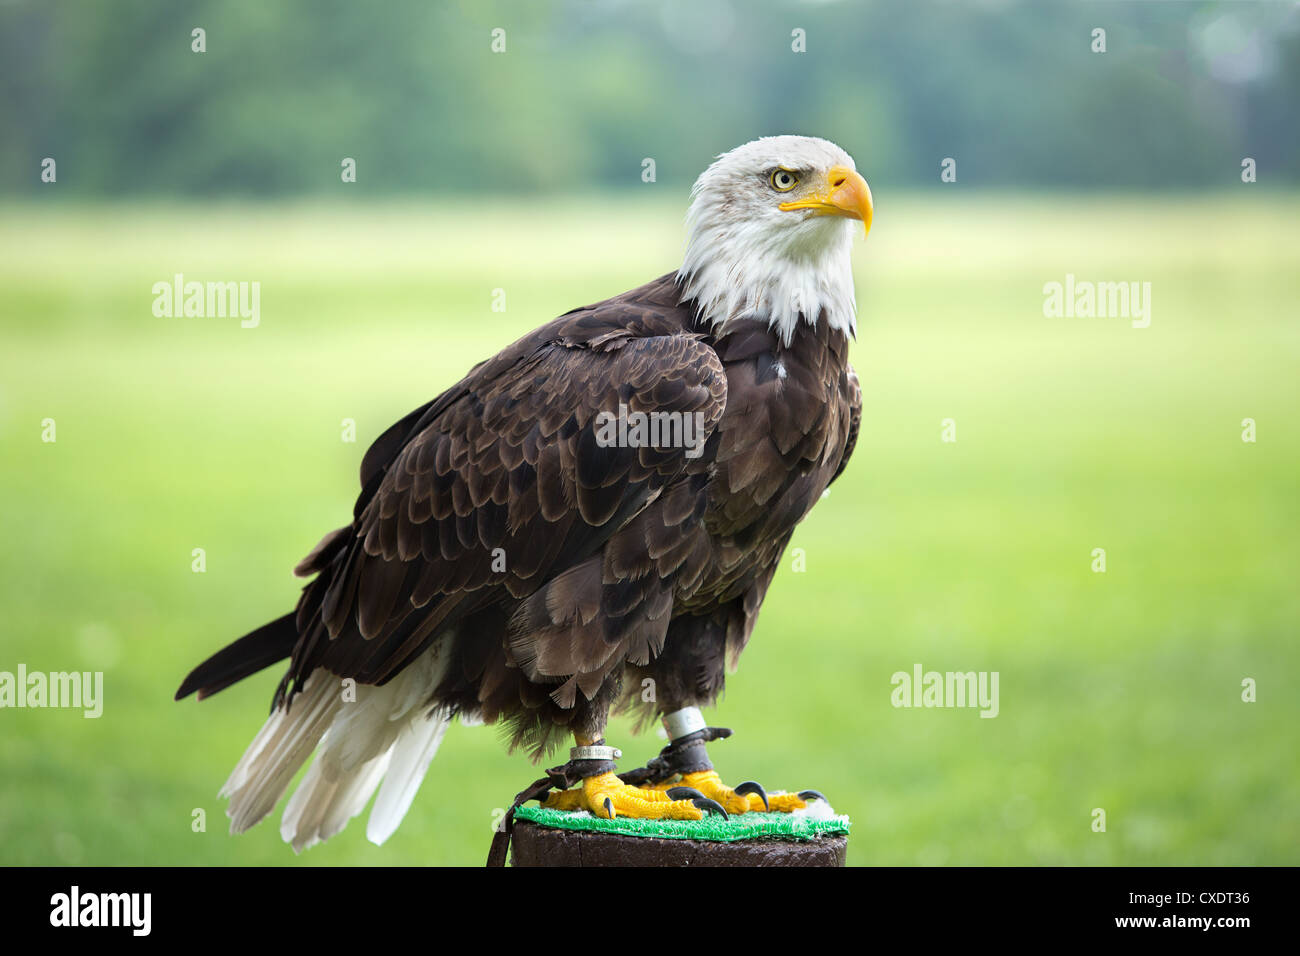 an american bald eagle perched on perch stock photo 50706074 alamy